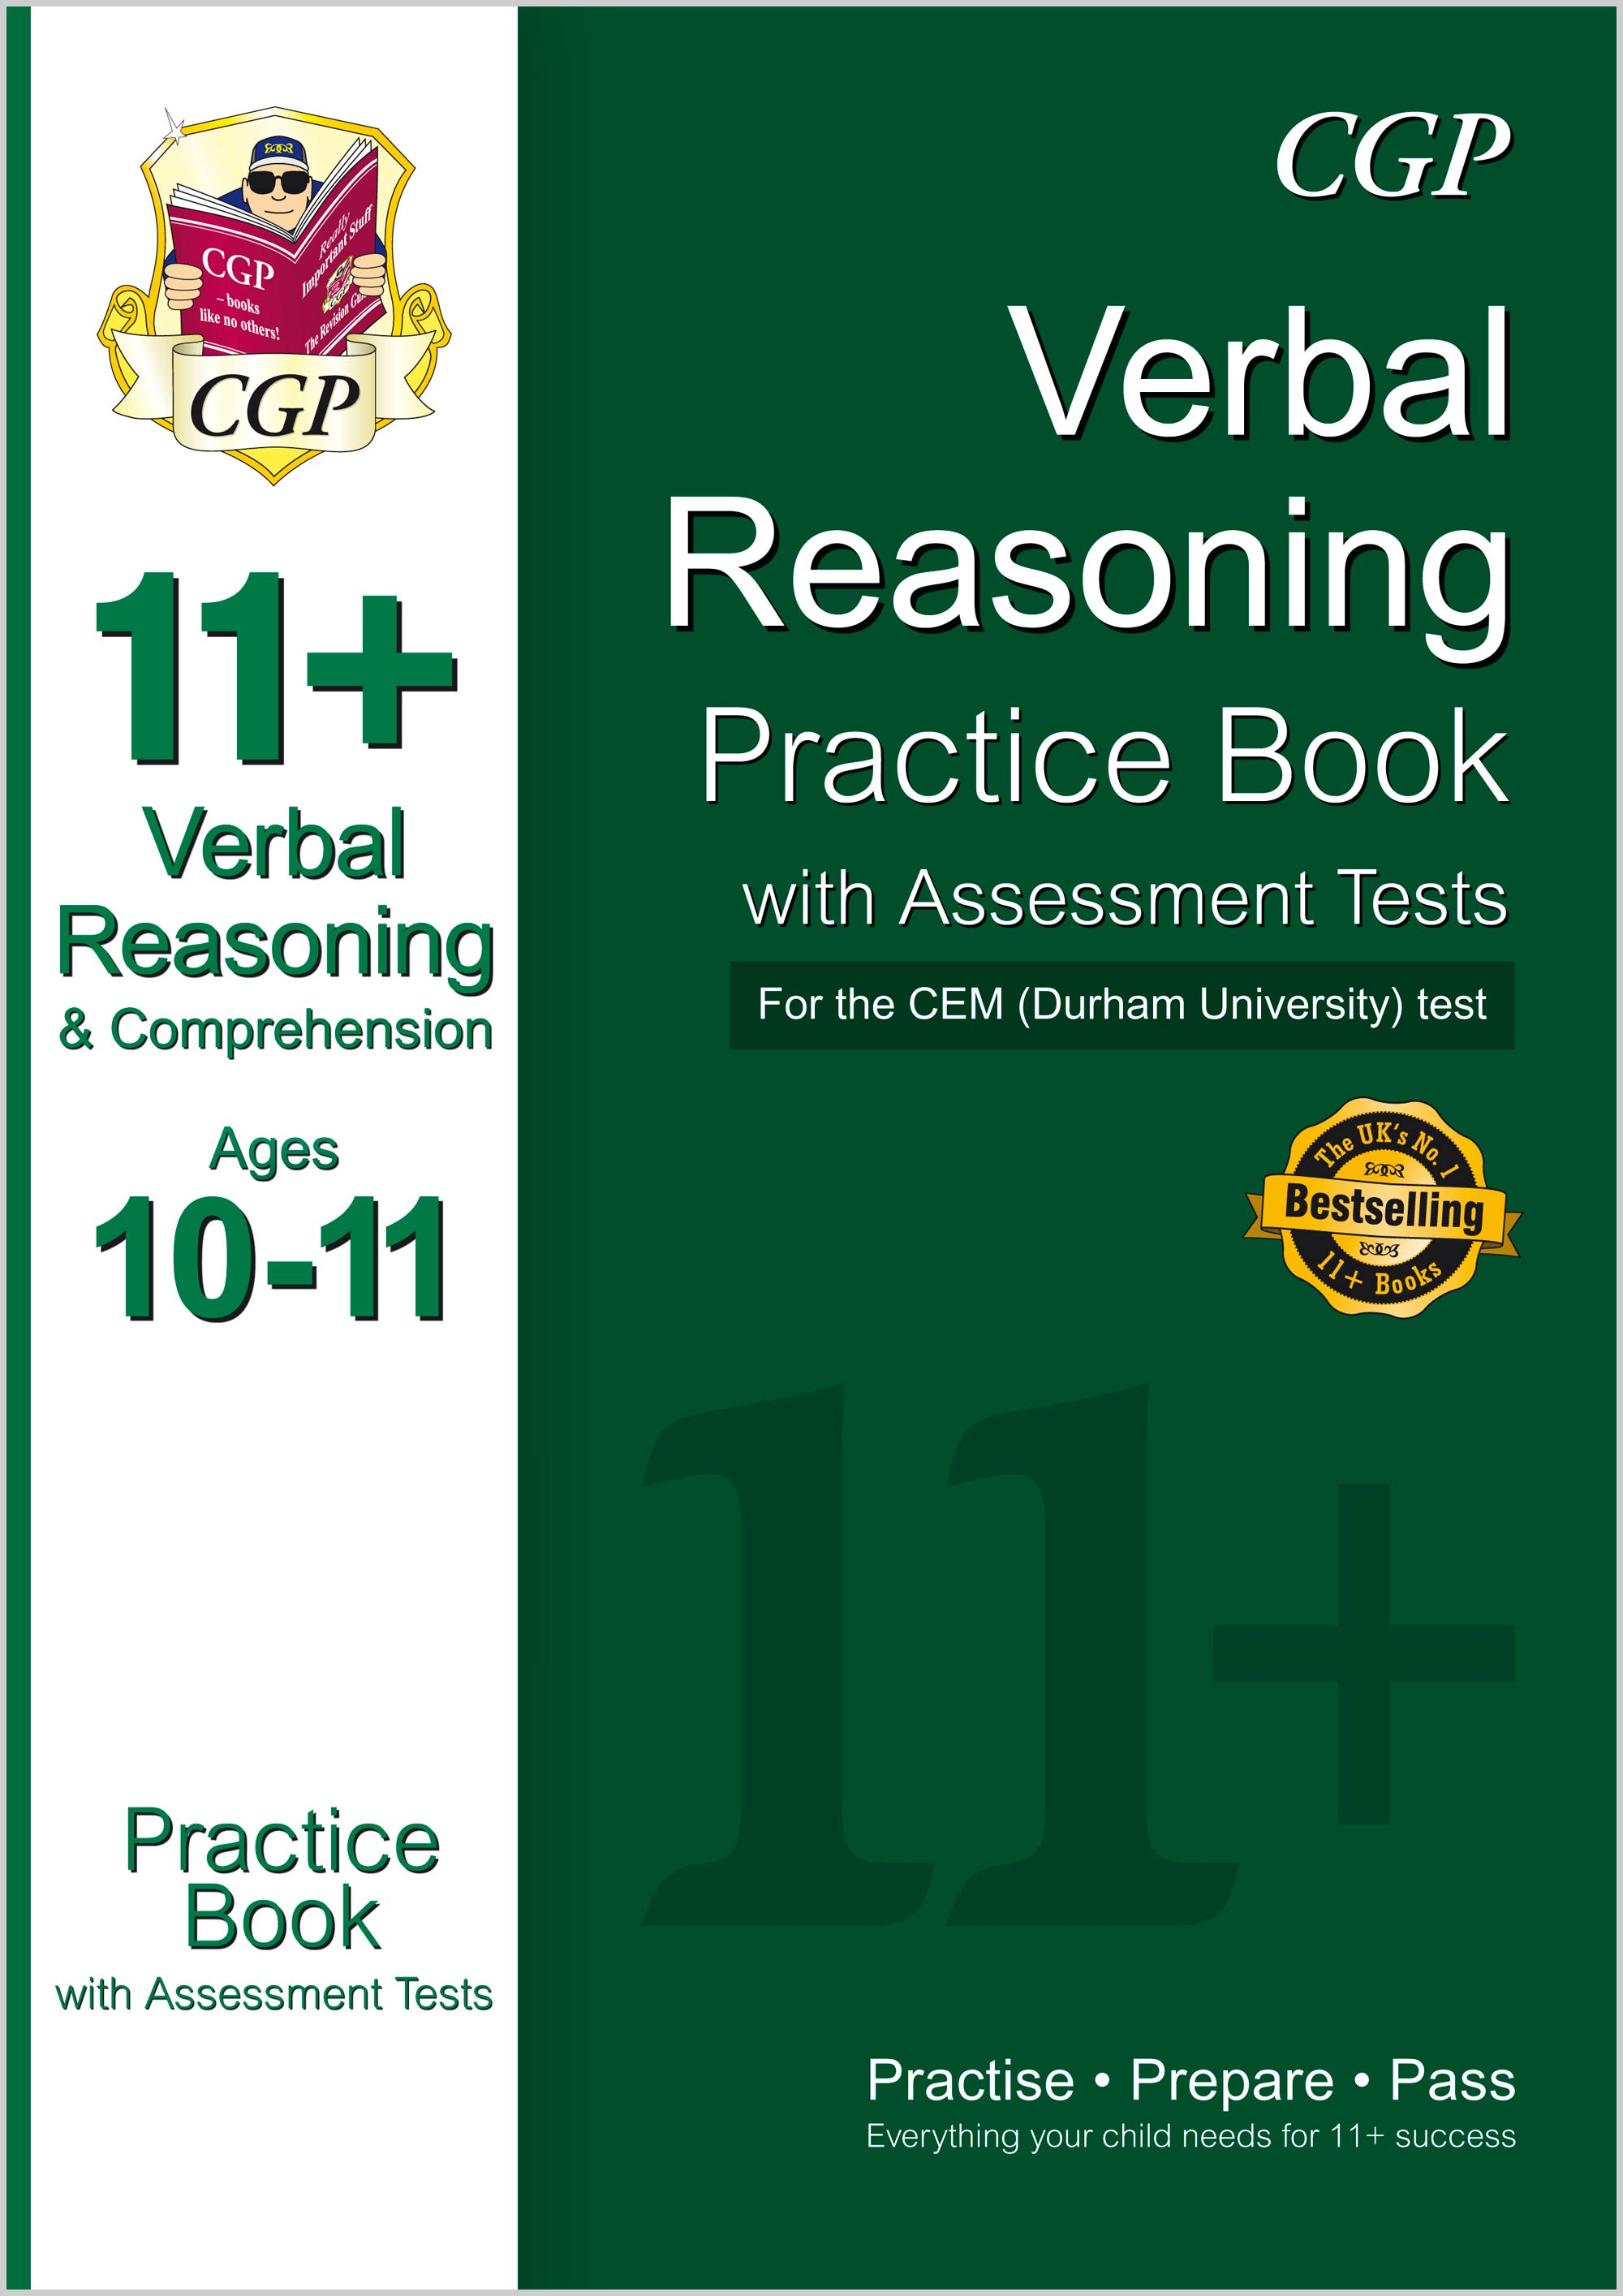 V6QDE1 - 11+ Verbal Reasoning Practice Book with Assessment Tests (Ages 10-11) for the CEM Test